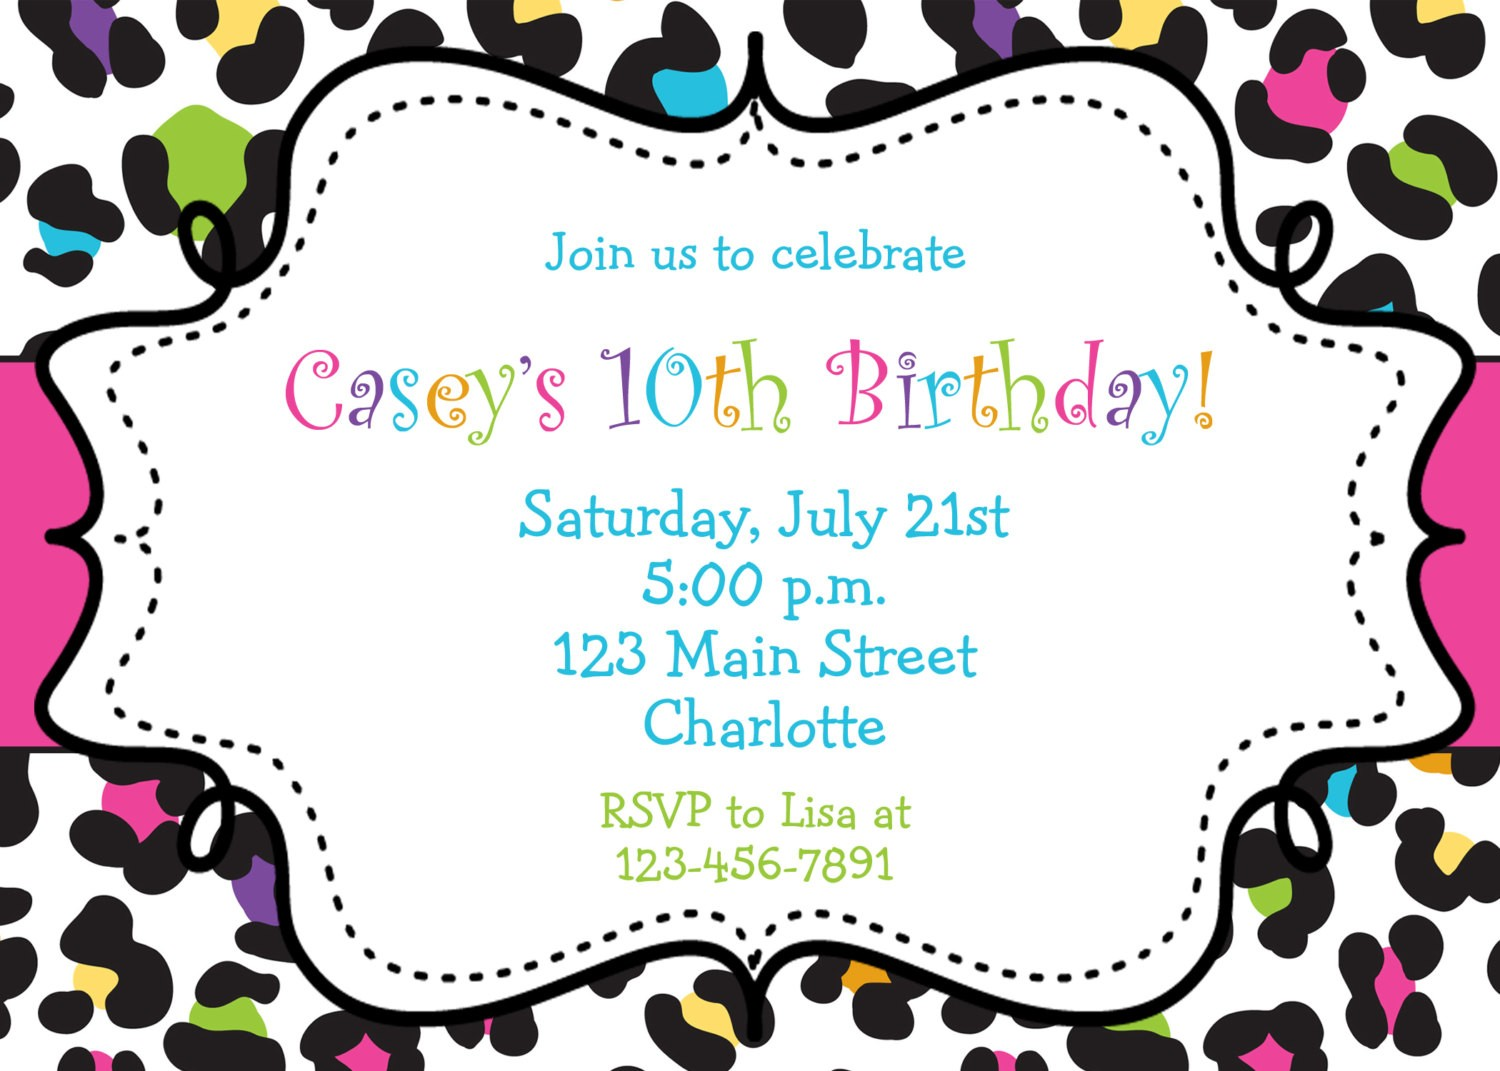 13th birthday party invitations templates free ; plain_free_printable_birthday_party_games_for_kids_all_cheap_article_3_9